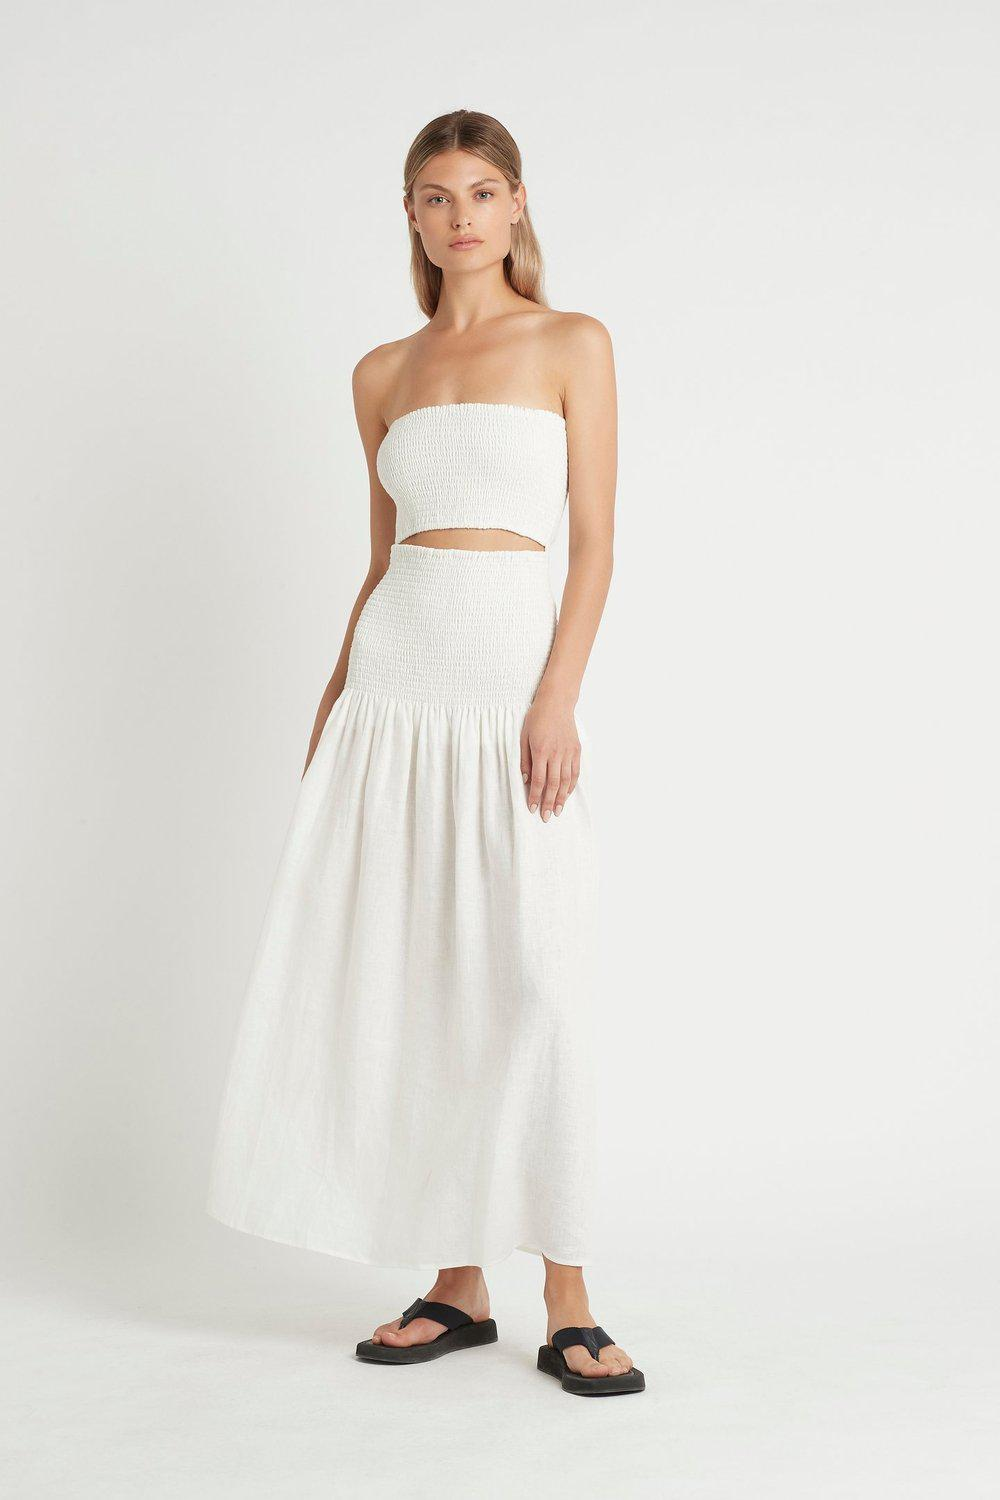 Madelyn Strapless Dress / Ivory | SIR | Mad About The Boy